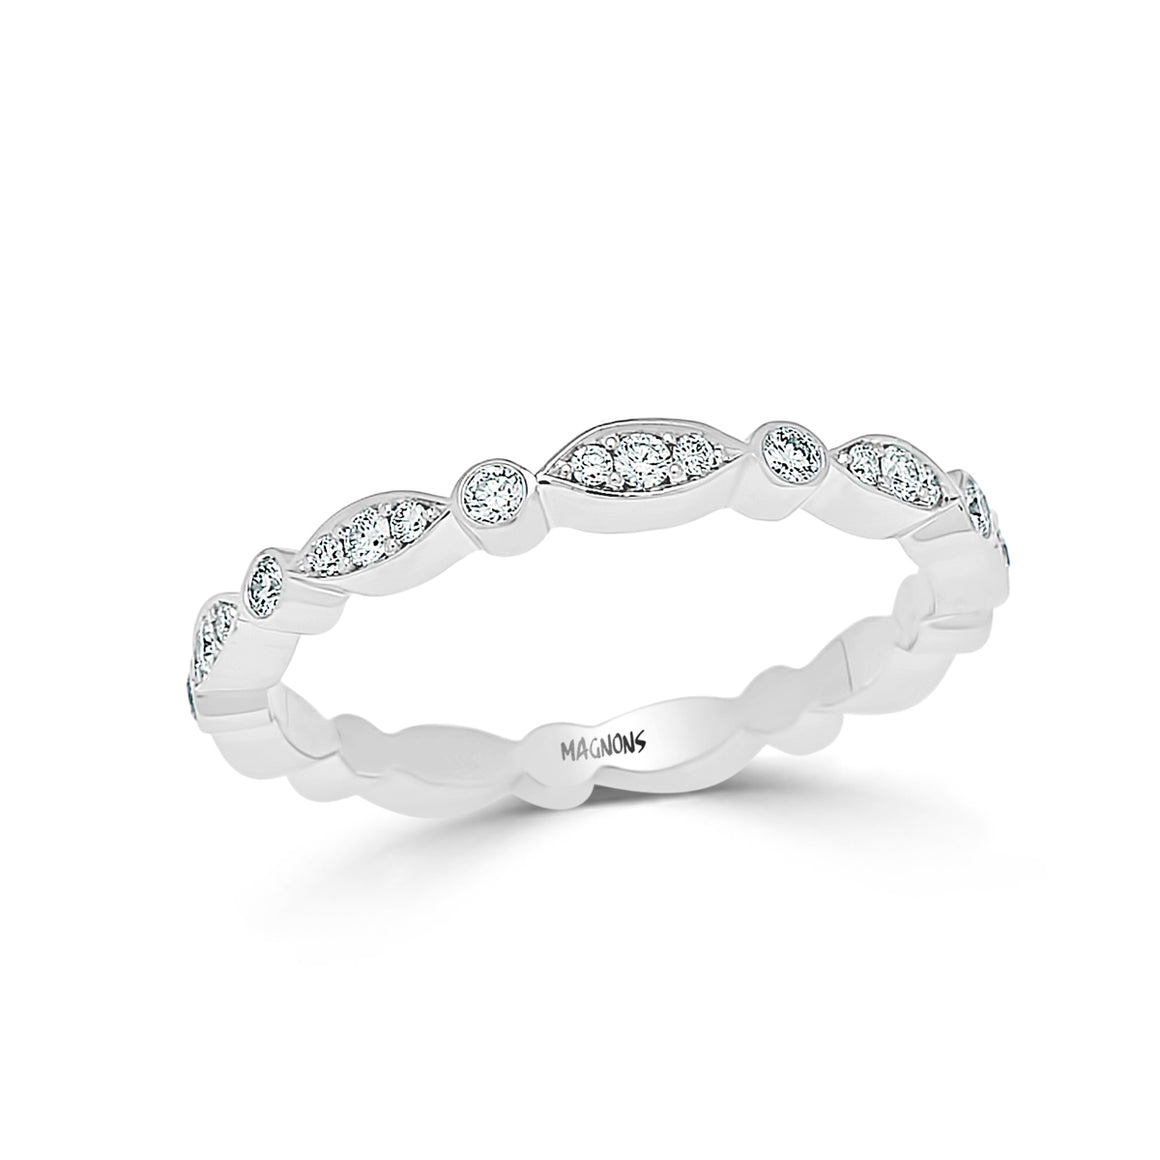 CANADIAN DIAMOND ETERNITY WEDDING BAND